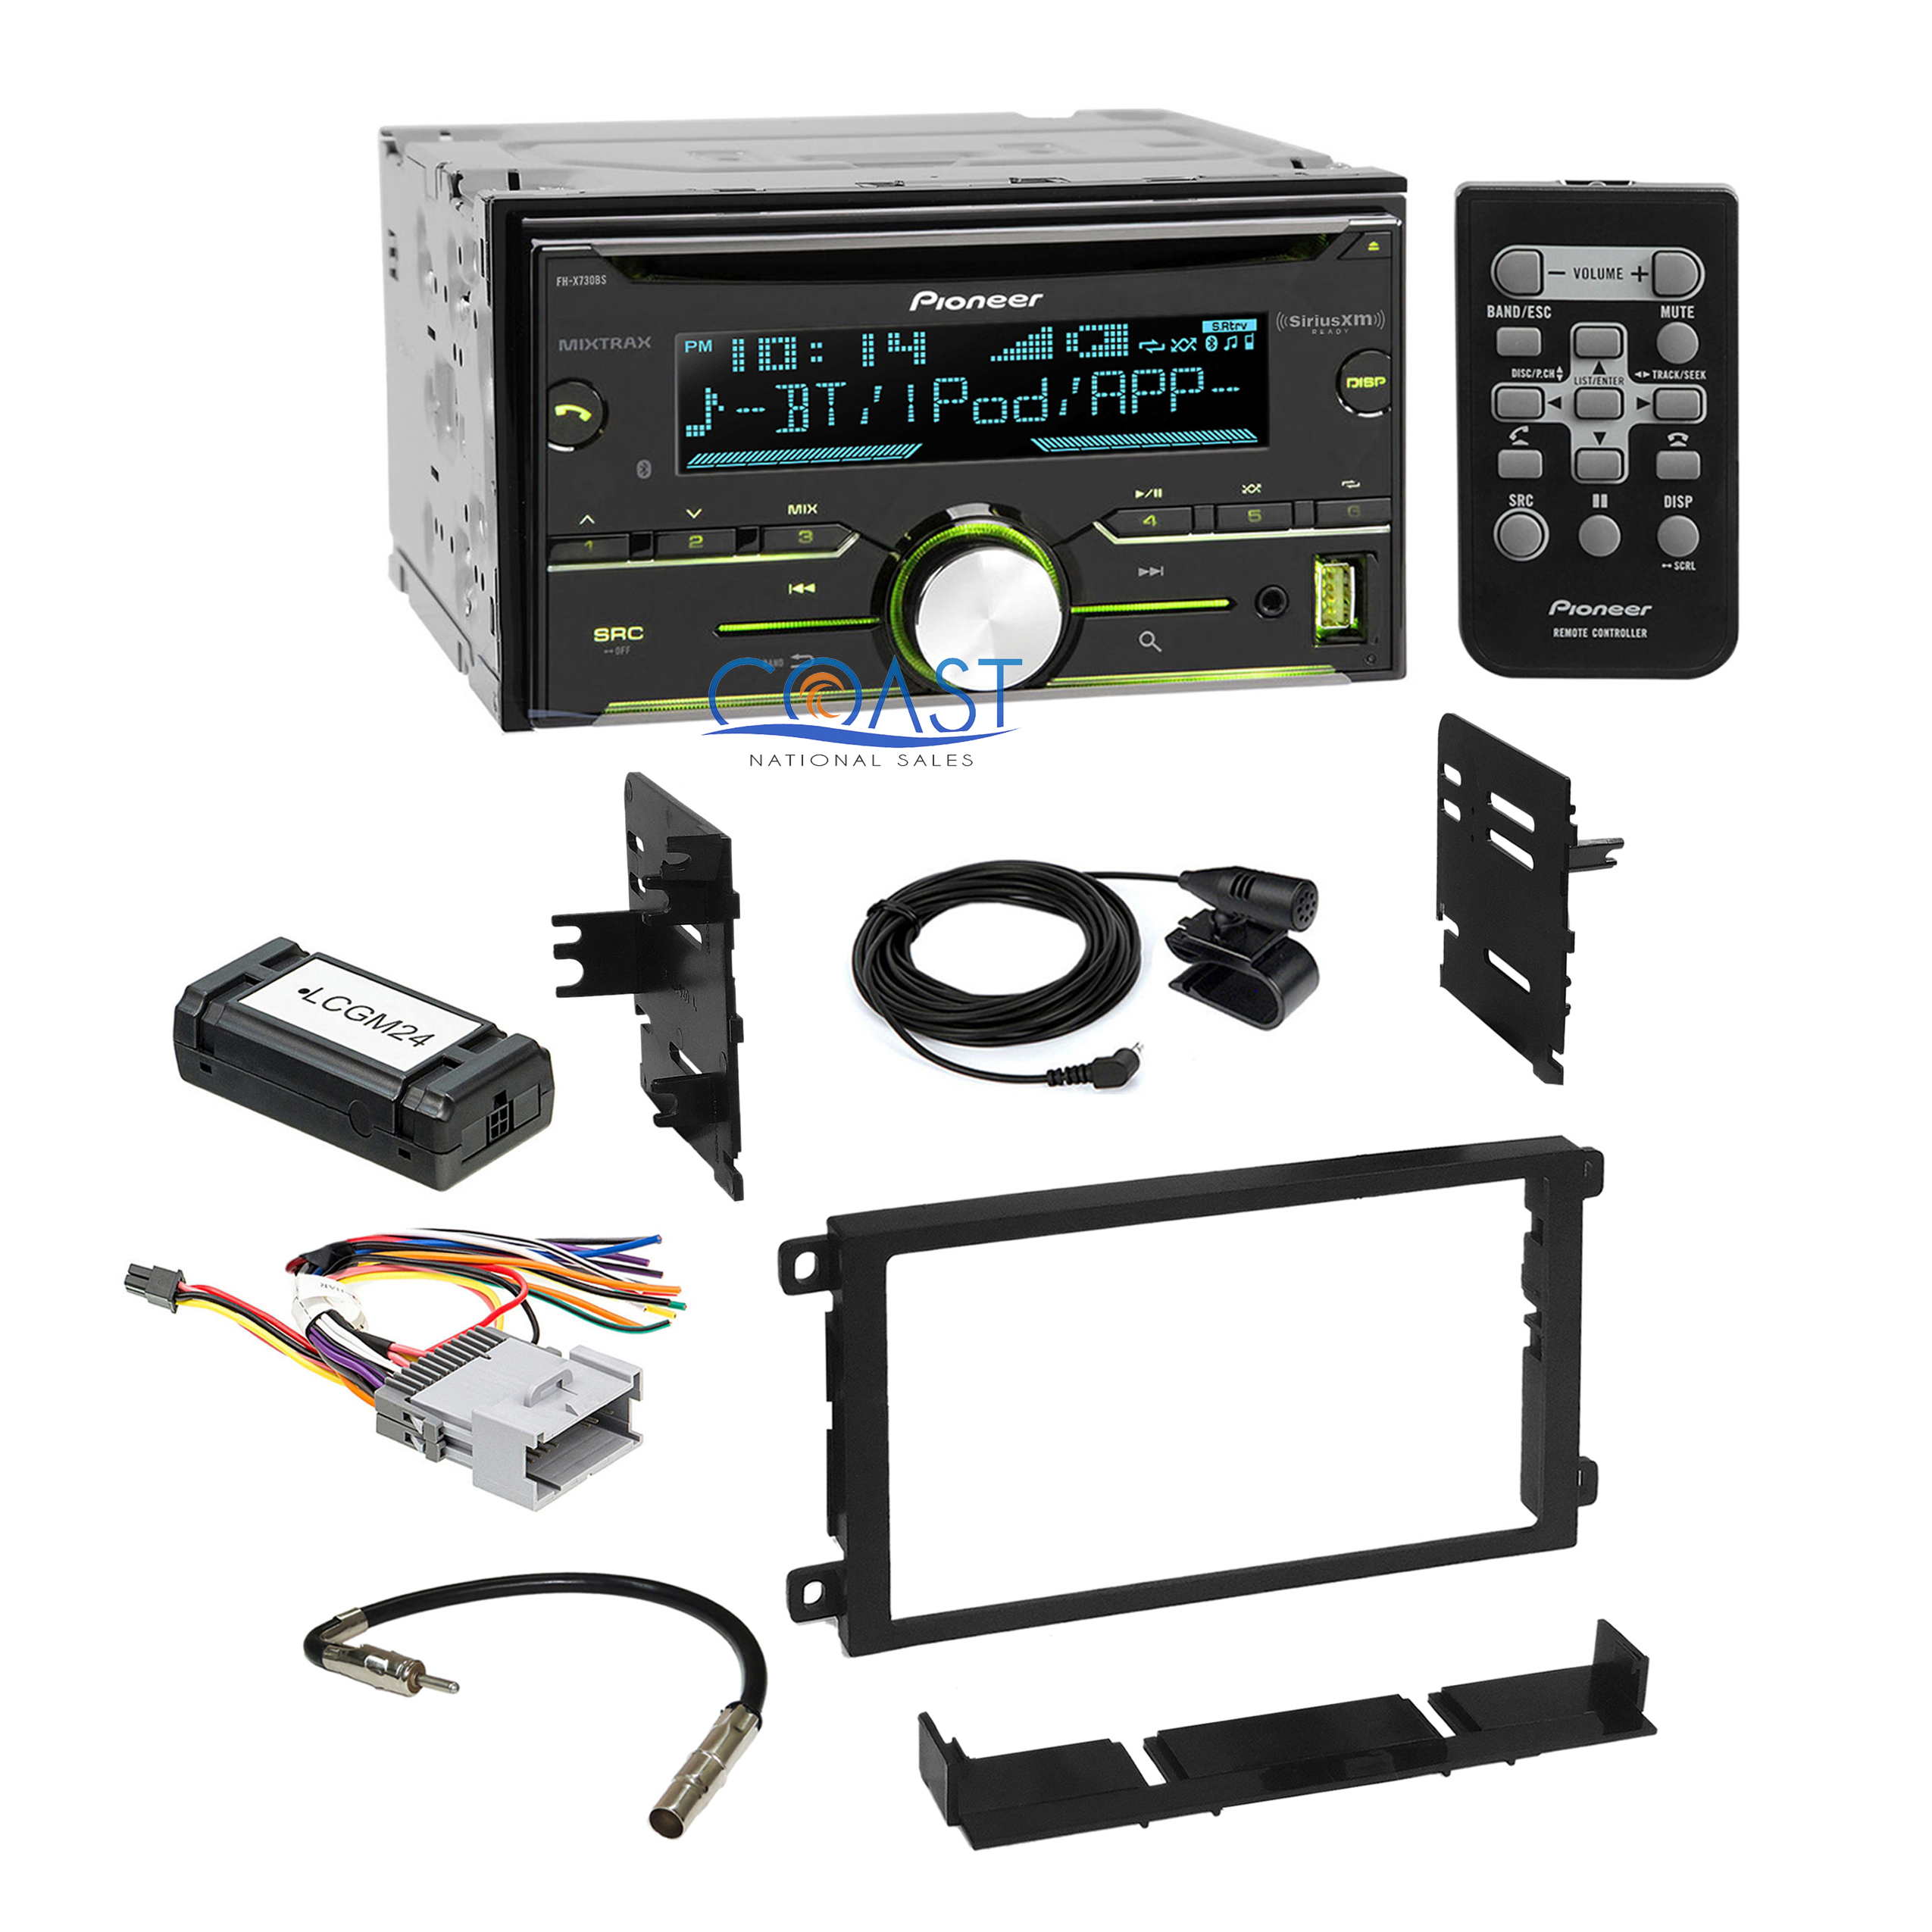 Details about Pioneer Car CD USB Sirius Xm Stereo Dash Kit Harness on